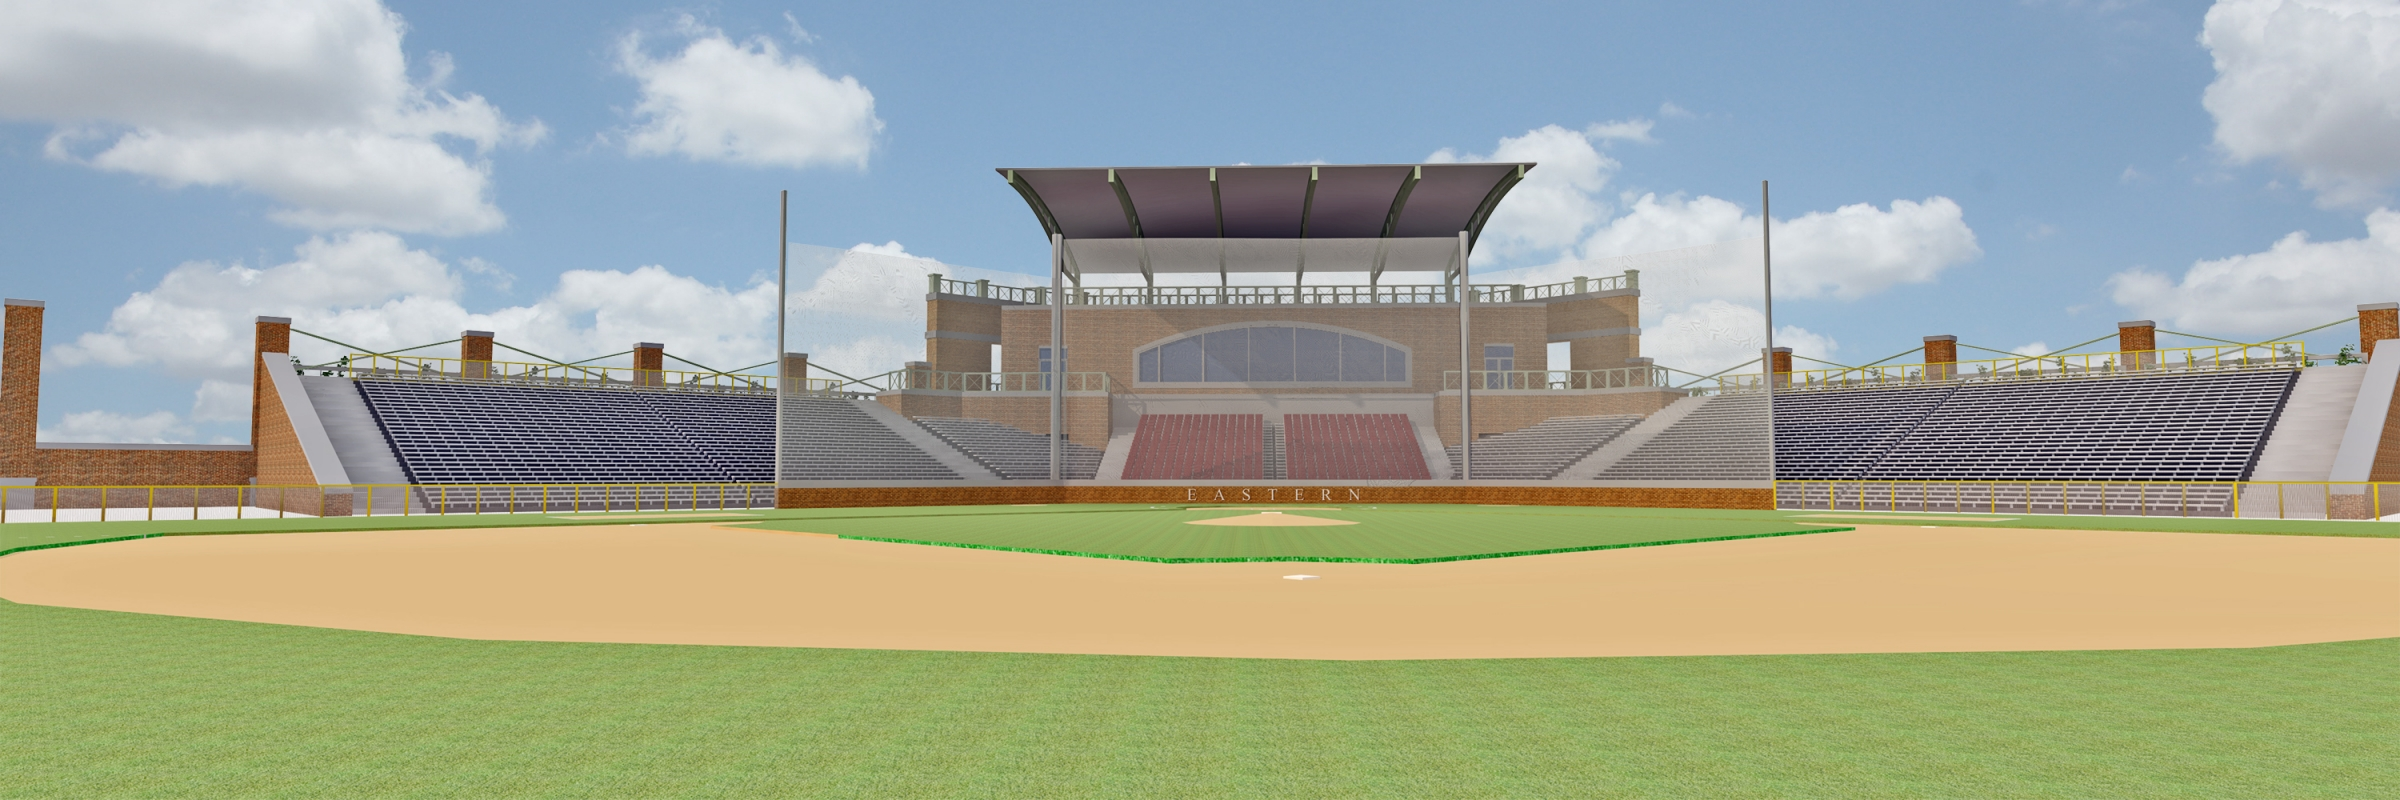 rendering of earl combs stadium